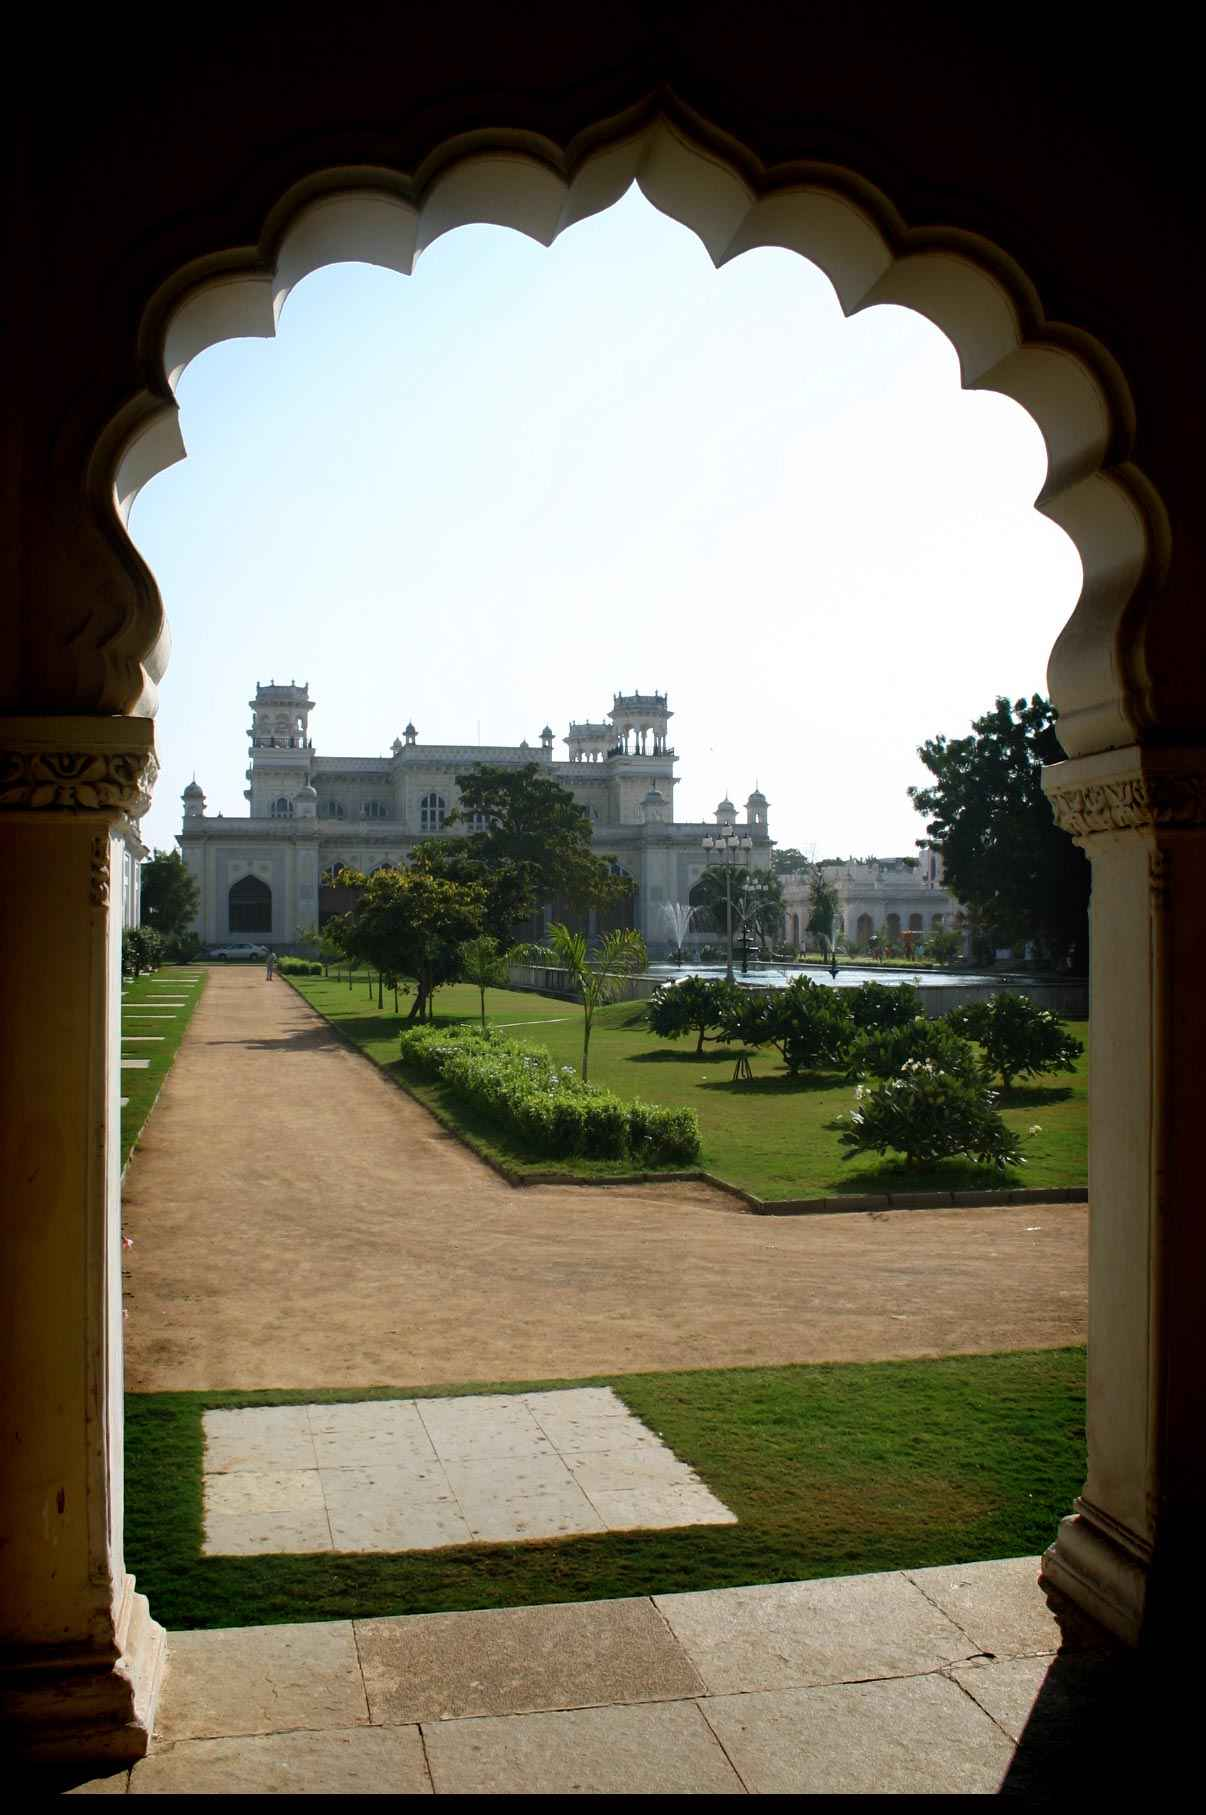 khilwat_palace_located_in_Old_hyderabad_city_a_nizam's_palace_2.jpg